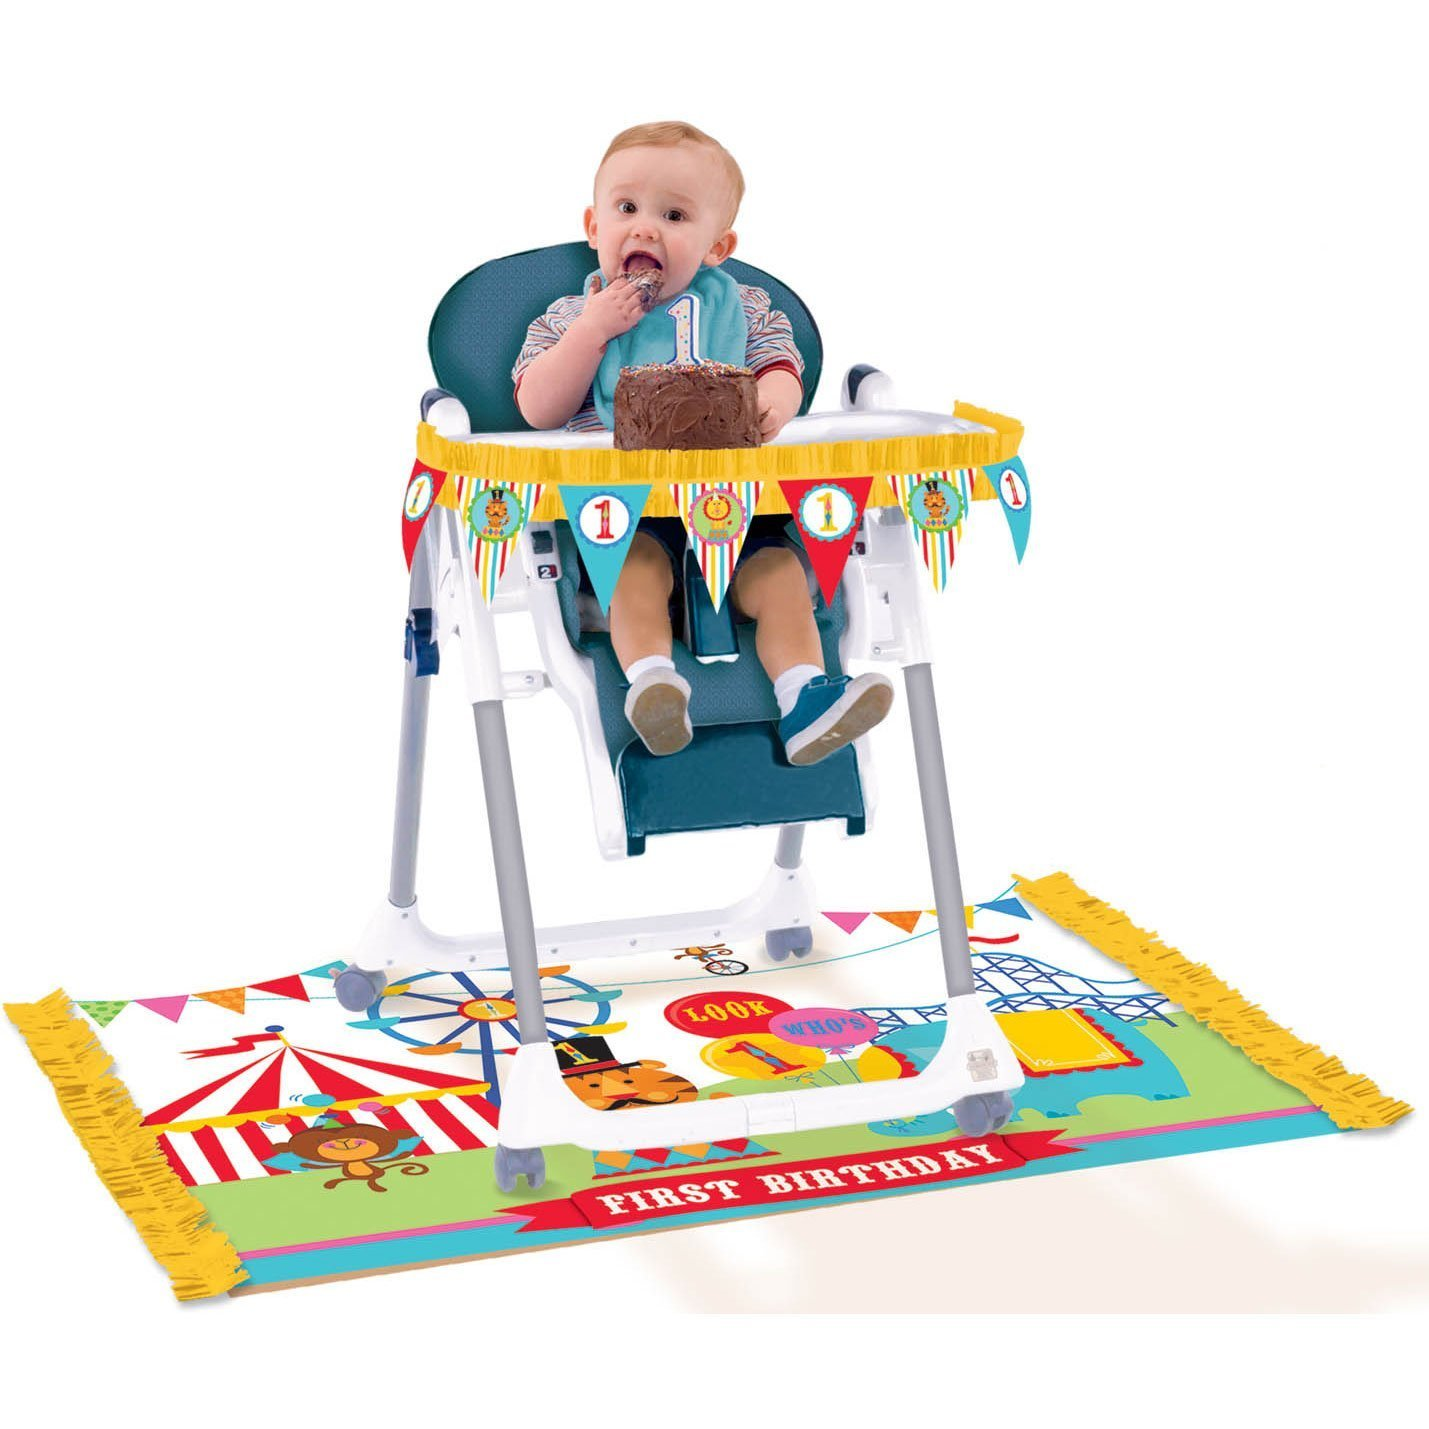 Boys First Birthday High Chair Party Kits Birthday Wikii